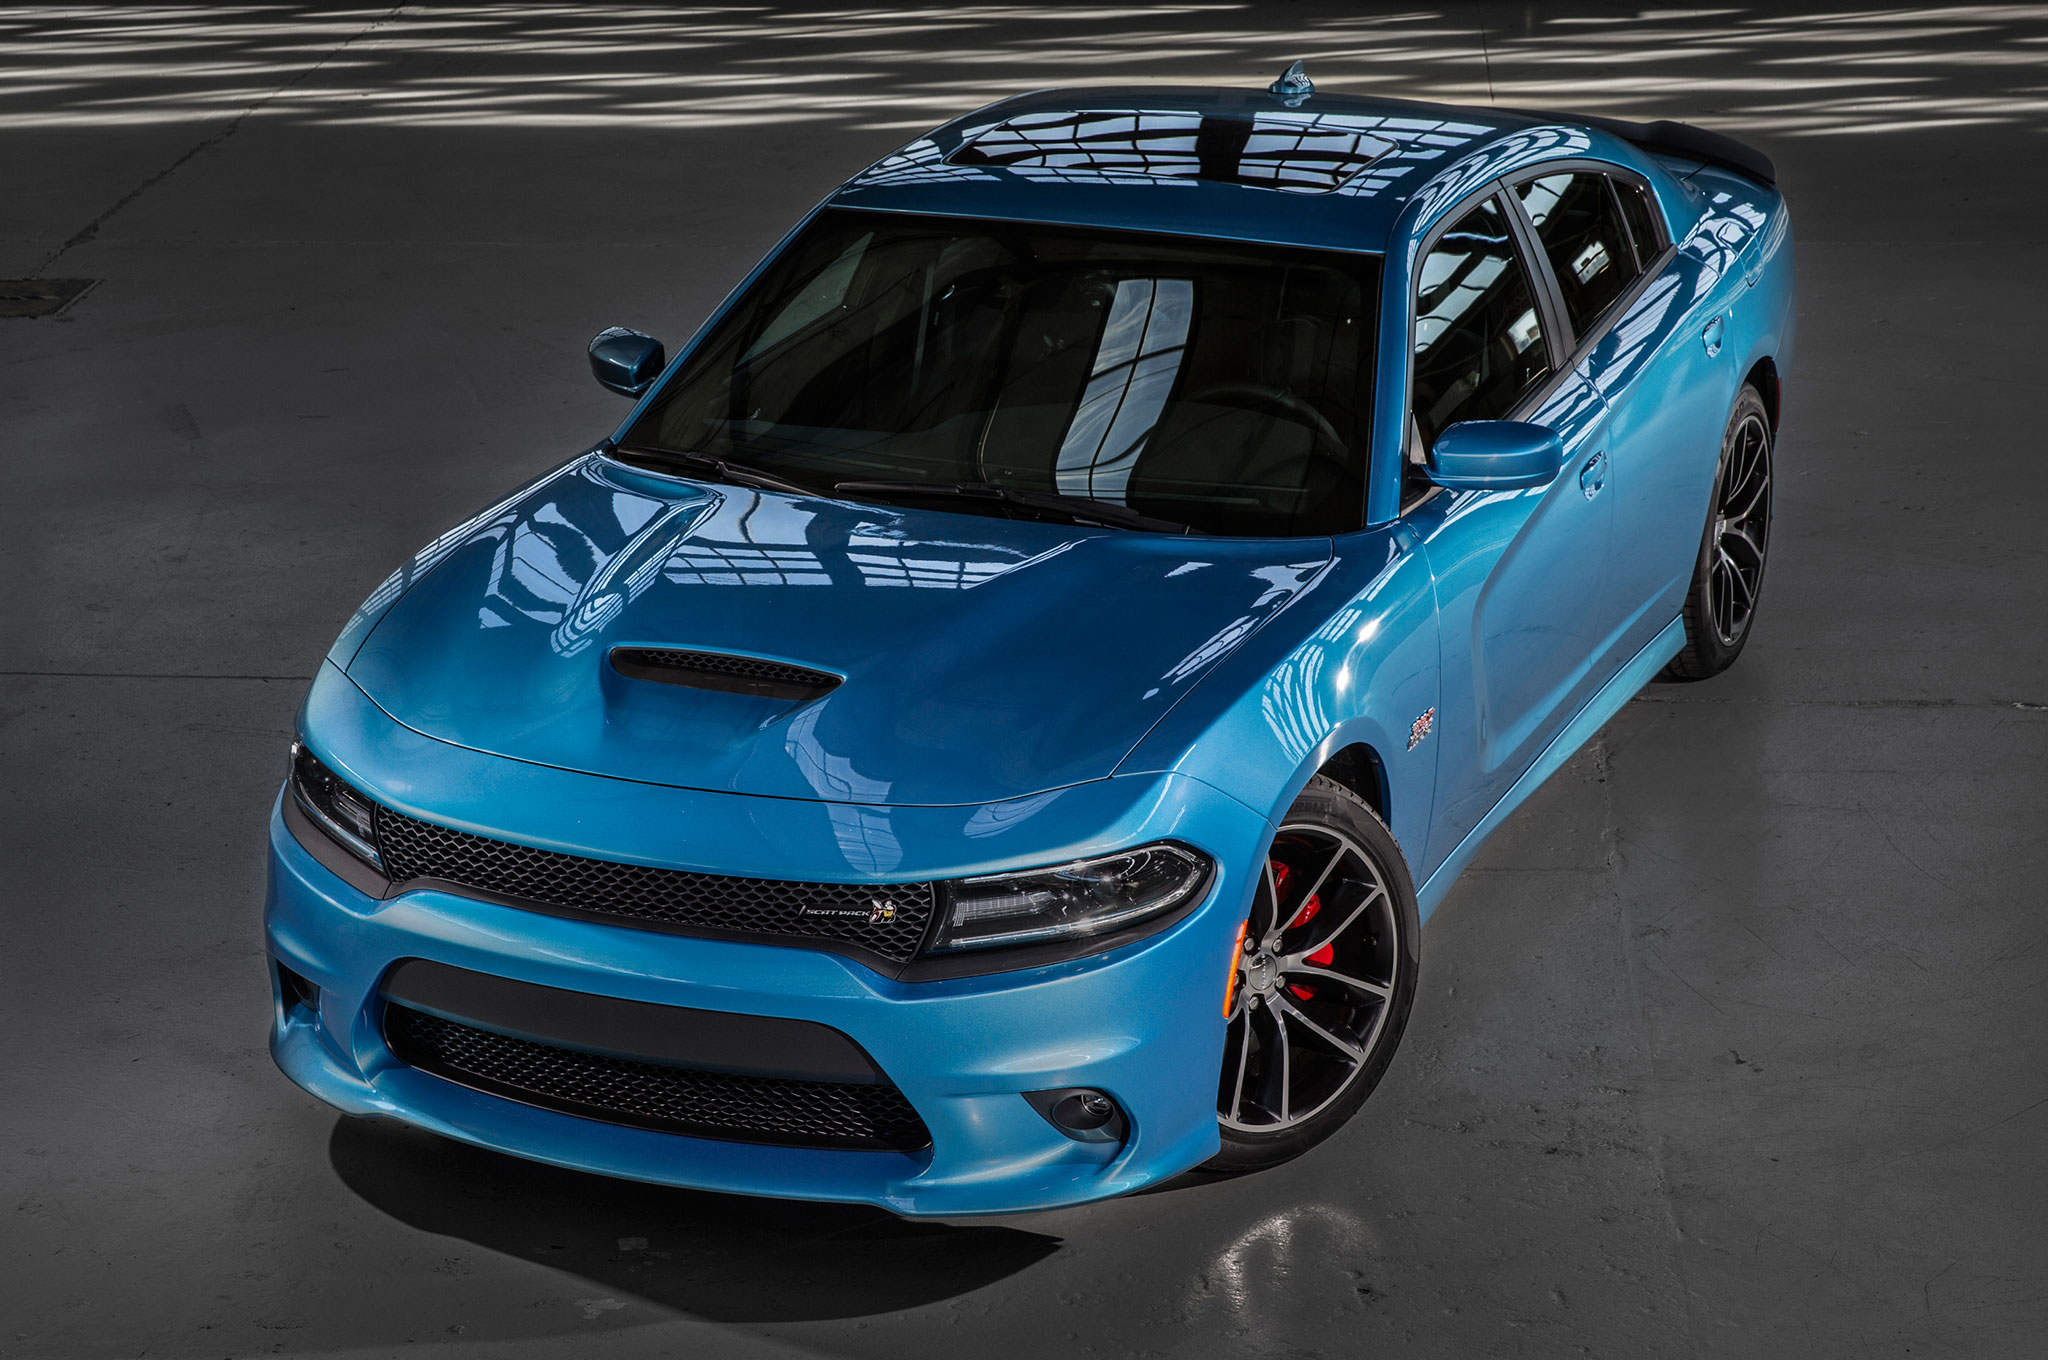 2015 Dodge Charger RT Scat Pack Above Front Three Quarter View. 17|250.  2015 Dodge Charger ...